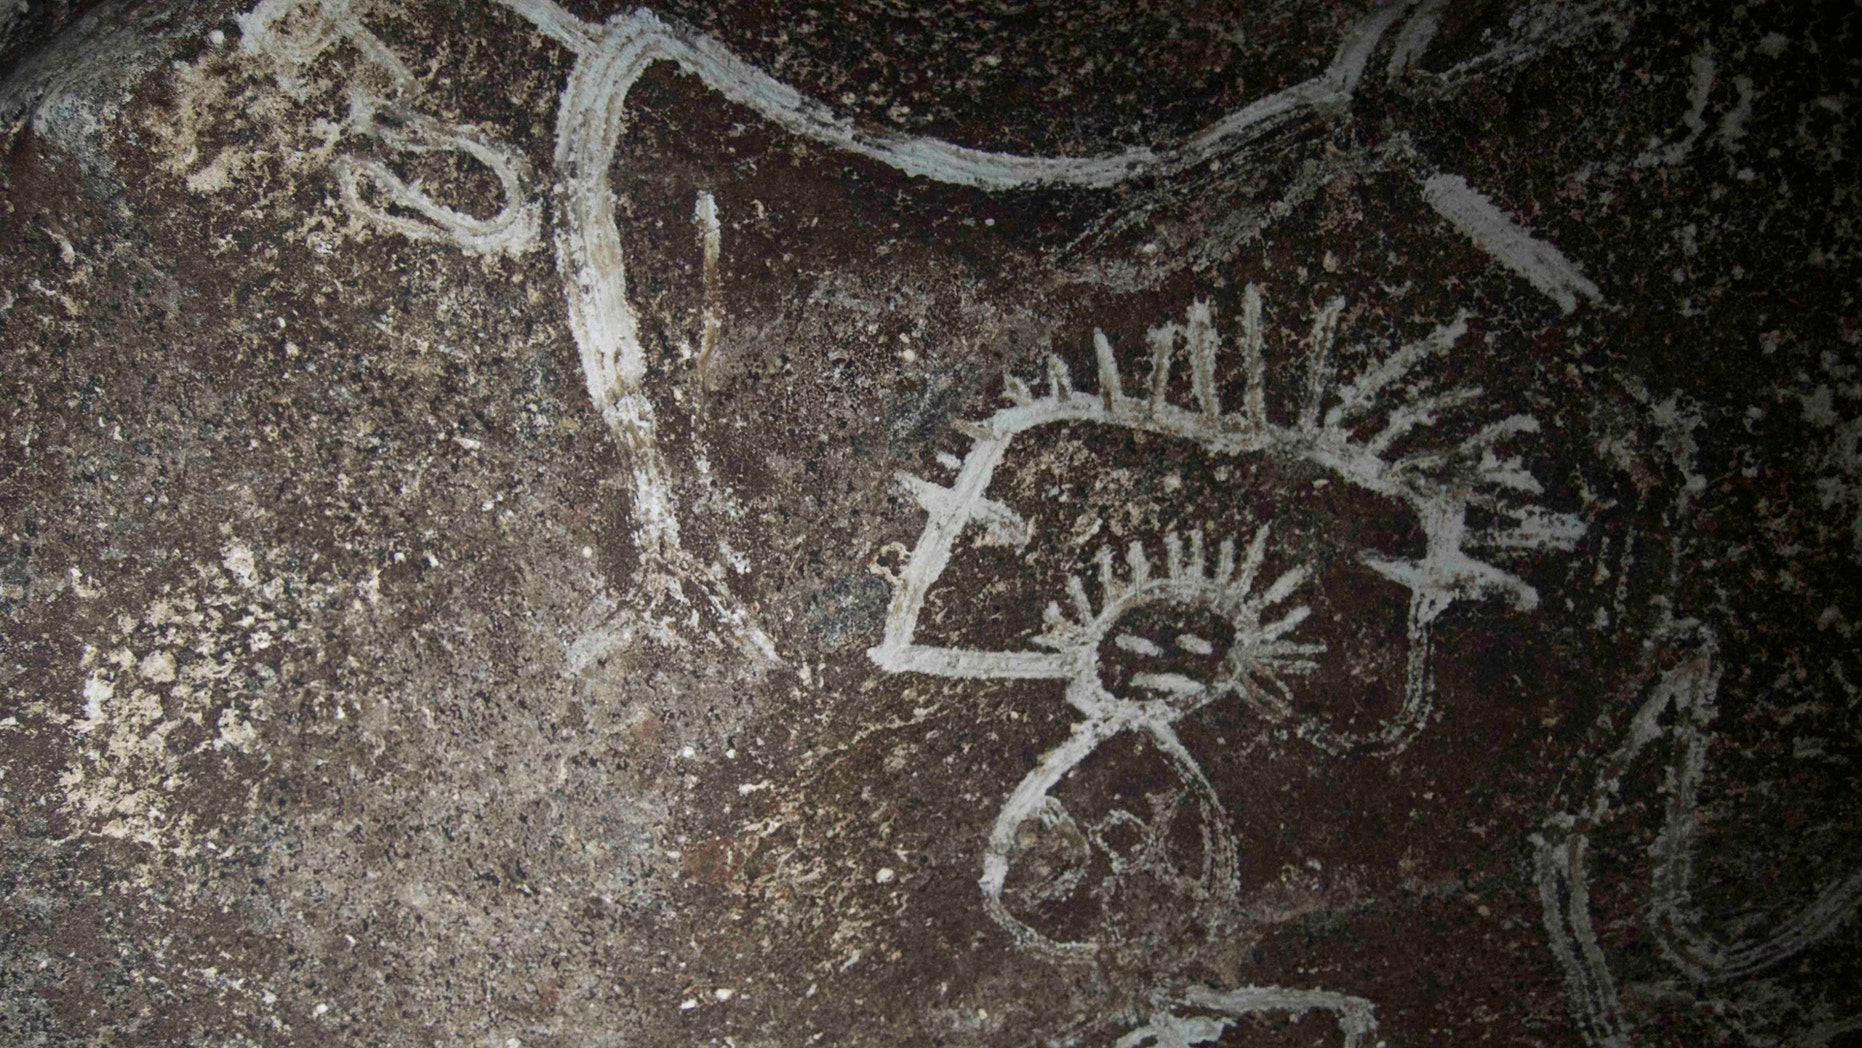 Indigenous rock art from Mona island. Note how the artist uses the contrast between the darker cave wall and the white design (Project El Corazon del Caribe)